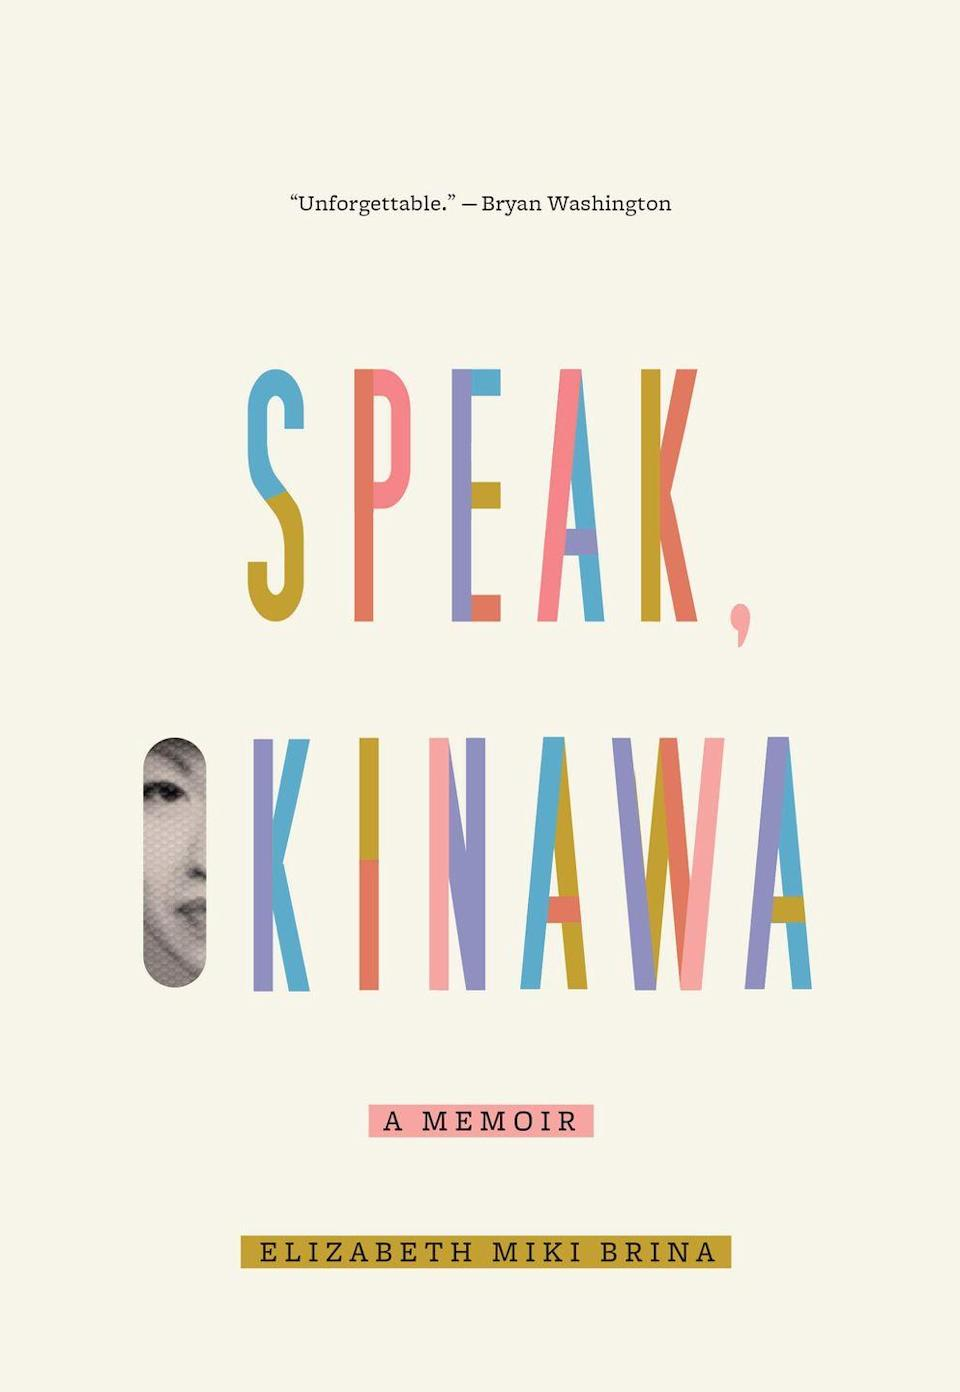 """<p>Elizabeth Miki Brina grew up frustrated at her Okinawan mother's inability to assimilate in Western society, while admiring her indefectable all-American father. But when she looks into the tumultuous history of Okinawa and how warring countries rocked those who grew up there, it precipitates a journey of self-reflection, captured in this searingly honest memoir. - Helena Lee</p><p><a class=""""link rapid-noclick-resp"""" href=""""https://www.amazon.co.uk/Speak-Okinawa-Elizabeth-Miki-Brina/dp/0525657347/ref=sr_1_1?dchild=1&keywords=Speak%2C+Okinawa%2C+Elizabeth+Miki+Brina&qid=1616005691&sr=8-1&tag=hearstuk-yahoo-21&ascsubtag=%5Bartid%7C1927.g.35865085%5Bsrc%7Cyahoo-uk"""" rel=""""nofollow noopener"""" target=""""_blank"""" data-ylk=""""slk:SHOP NOW"""">SHOP NOW</a></p>"""